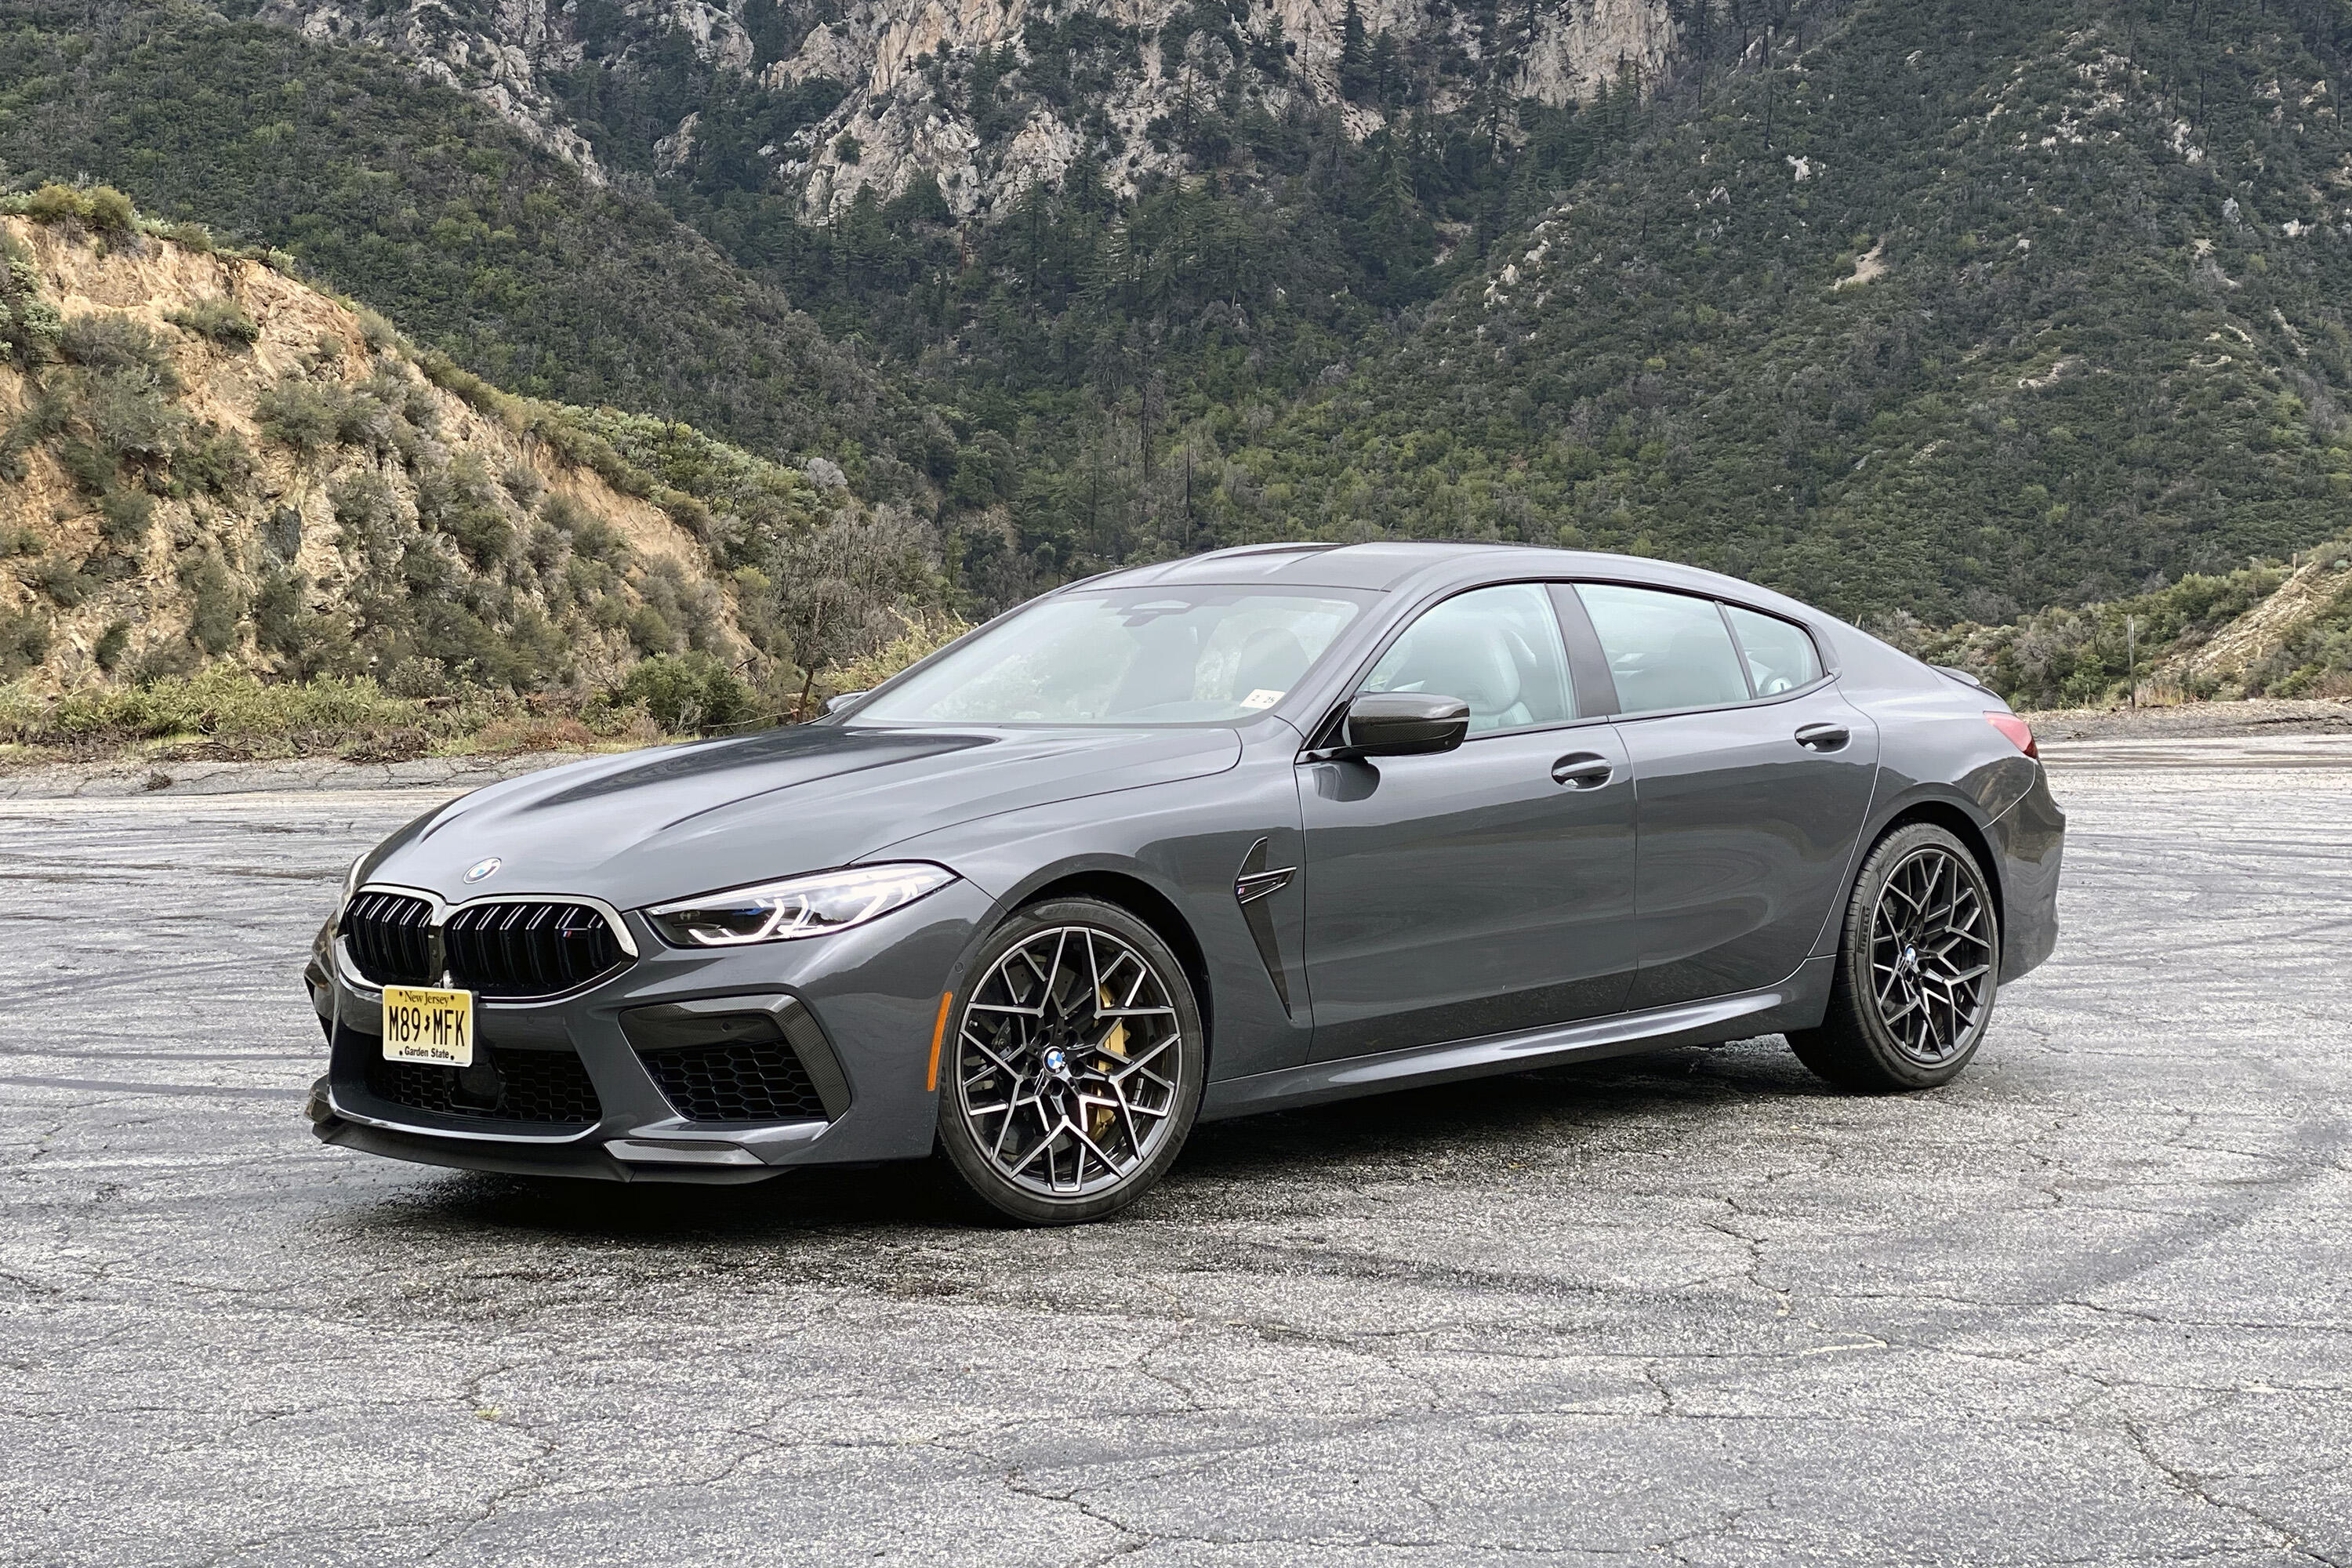 Car magazine uk lives with a bmw m8 gran coupe with pictures, specs and regular reports. 2020 Bmw M8 Gran Coupe Review Big Power Small Niche Roadshow